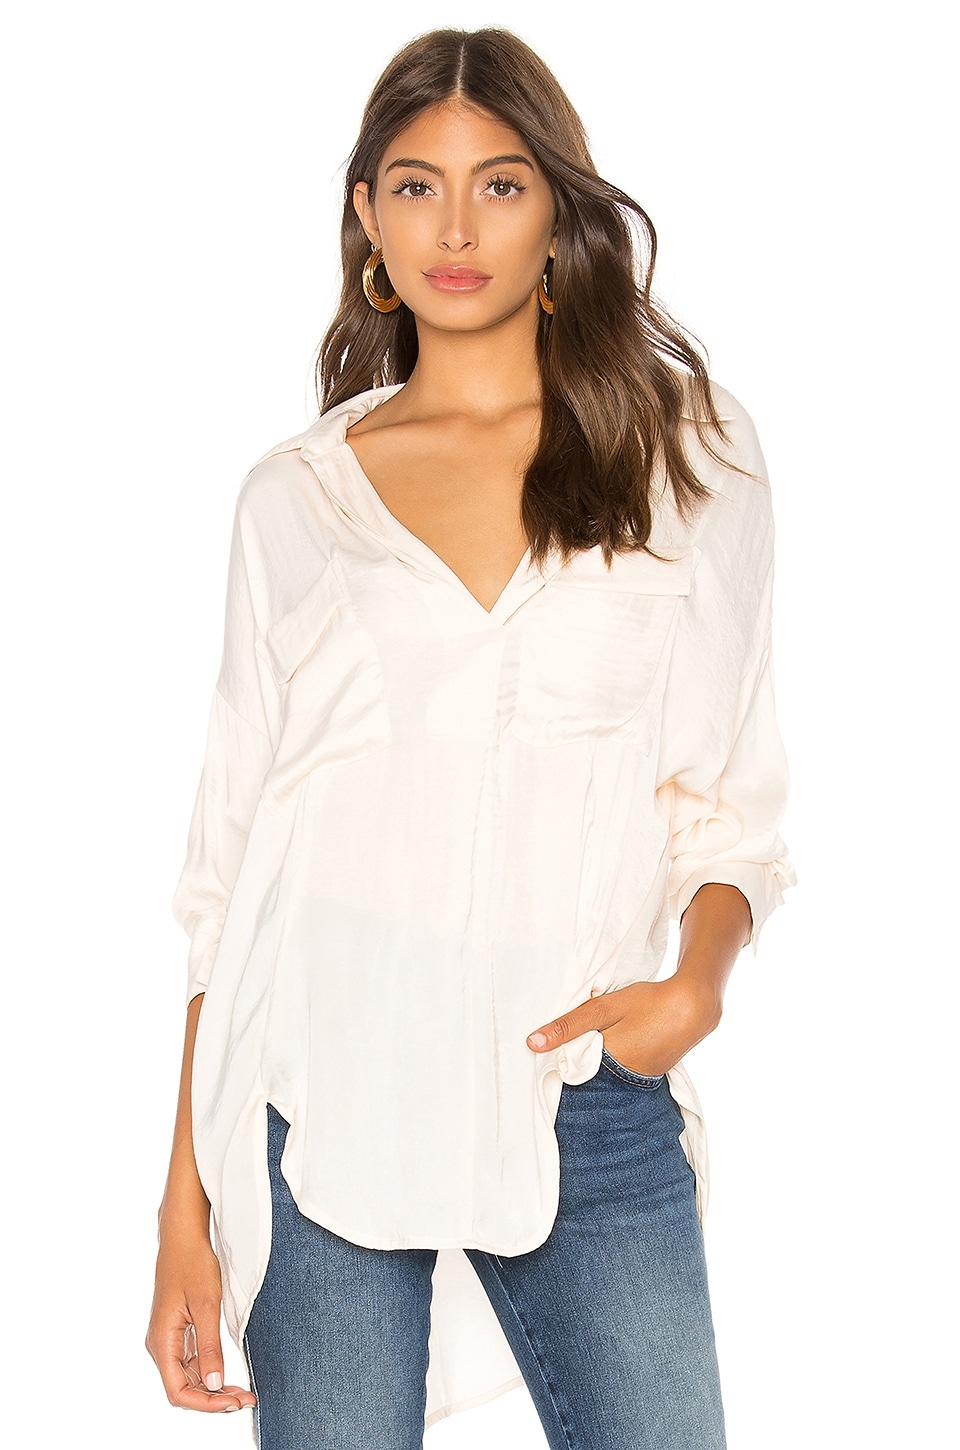 Free People Starry Dreams Pullover in Ivory